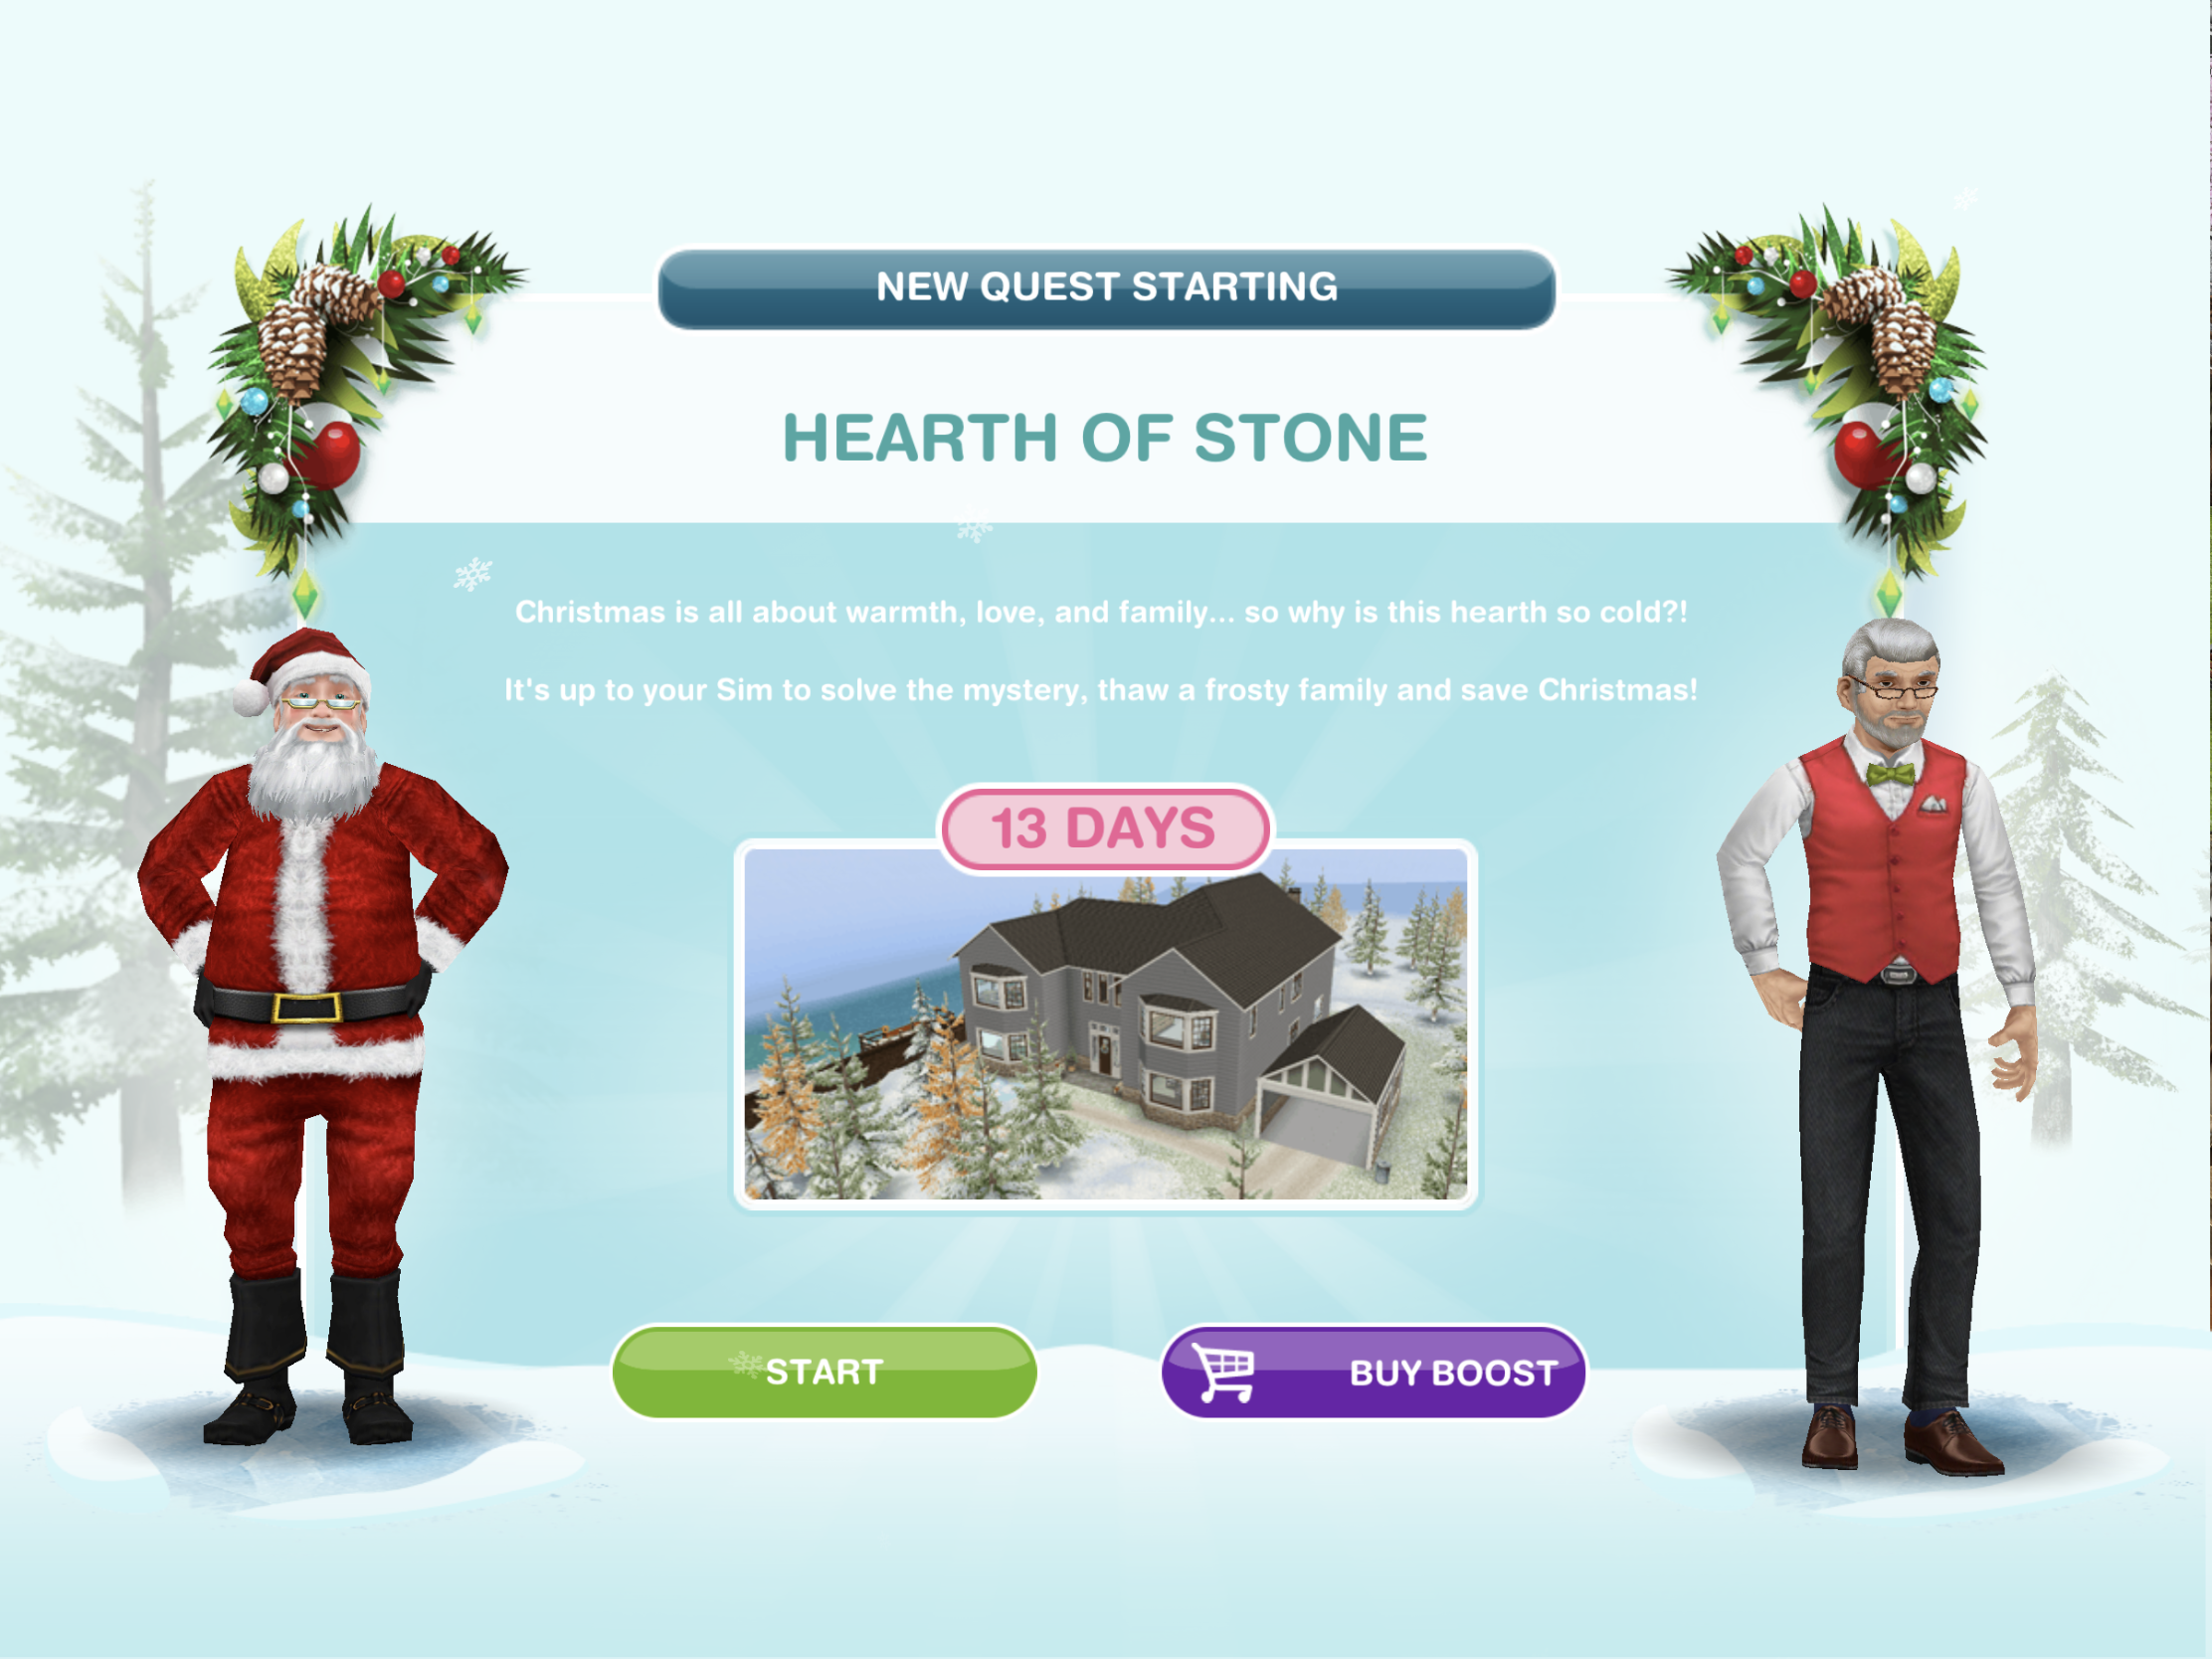 Sims Freeplay Christmas 2020 The Sims Freeplay  Hearth of Stone Christmas 2019 Quest – The Girl